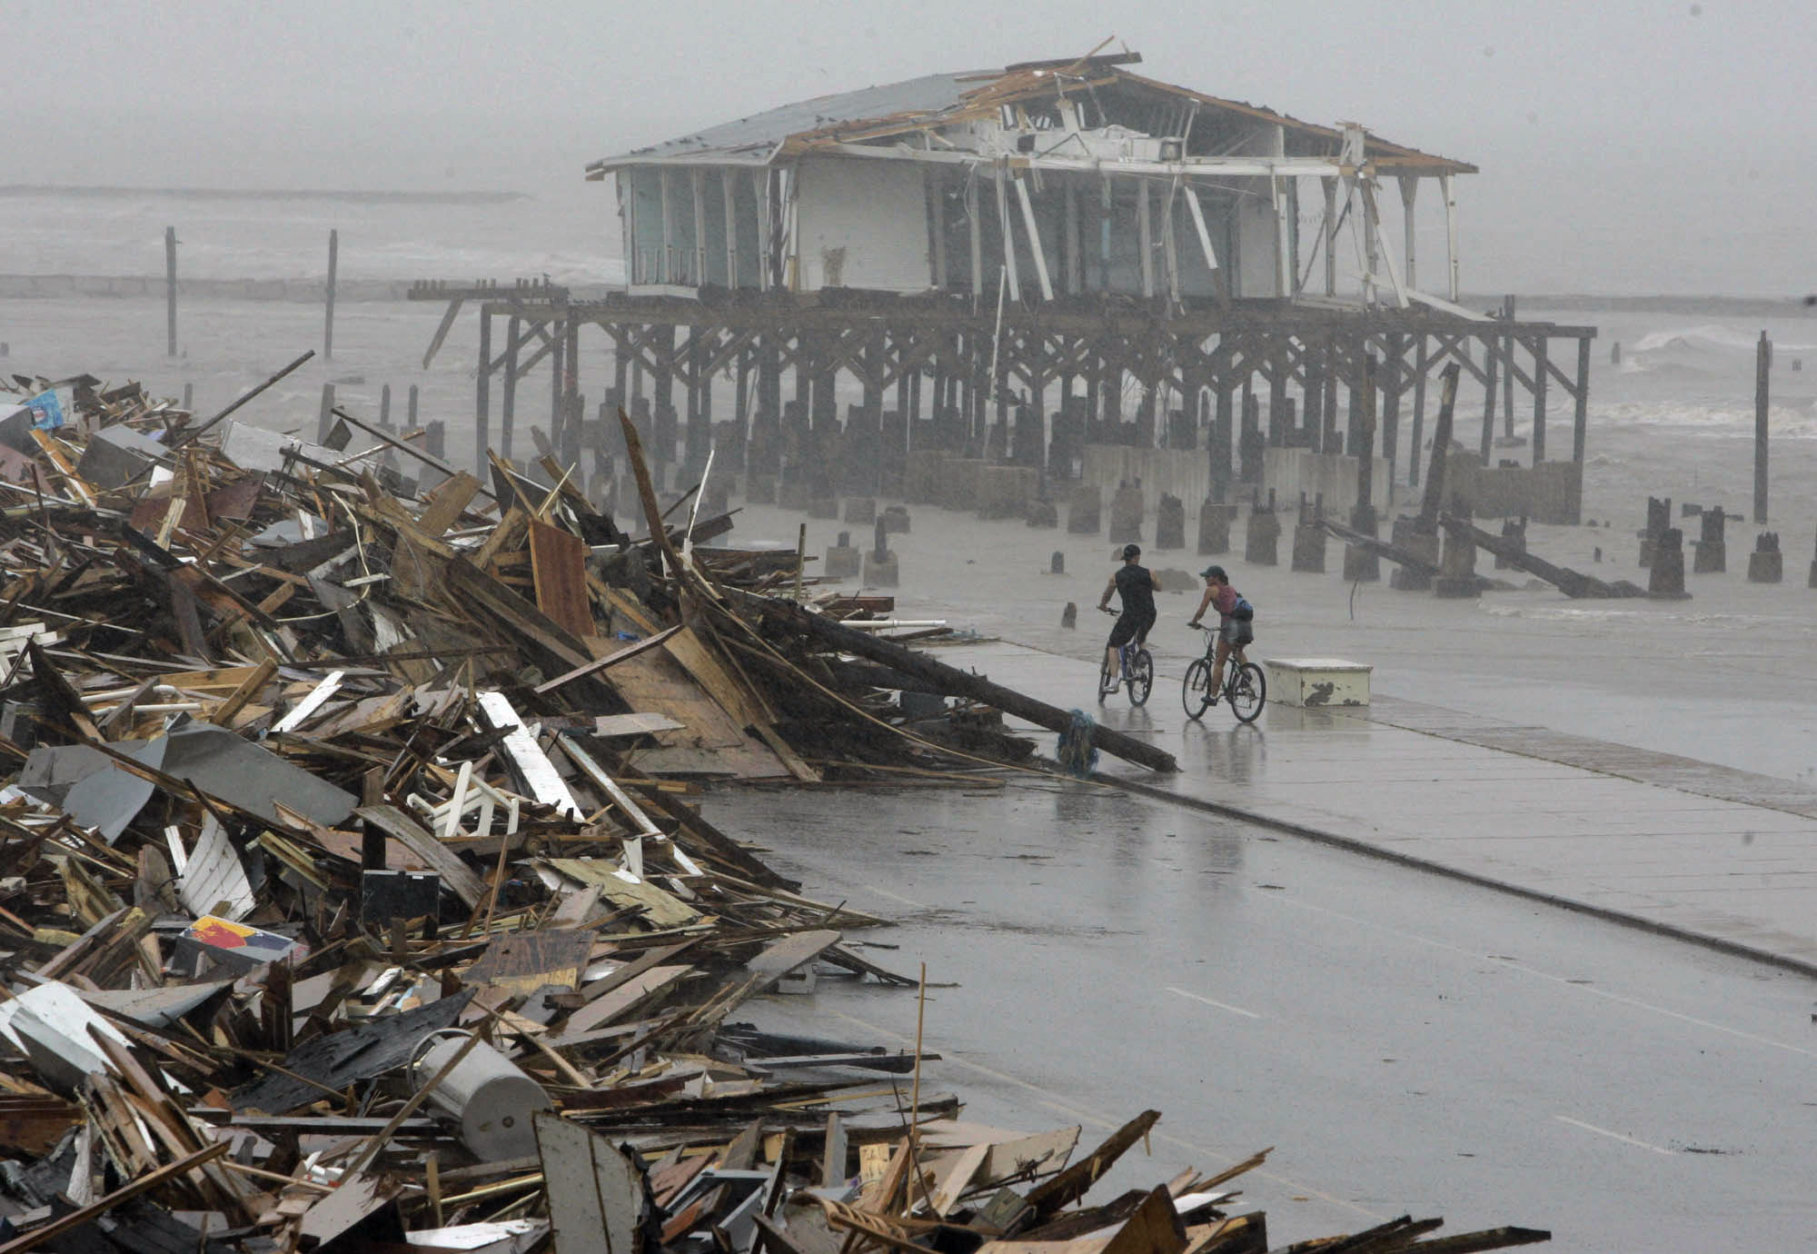 FILE - In this Sept. 14, 2008, file photo, cyclists ride past debris piled up on the seawall road after Hurricane Ike hit the Texas coast in Galveston. Most municipal recovery projects in Galveston in the wake of the hurricane have been finished in the eight years since the storm battered the island. Ike made landfall in Galveston on Sept. 13, 2008. (AP Photo/Matt Slocum, File)